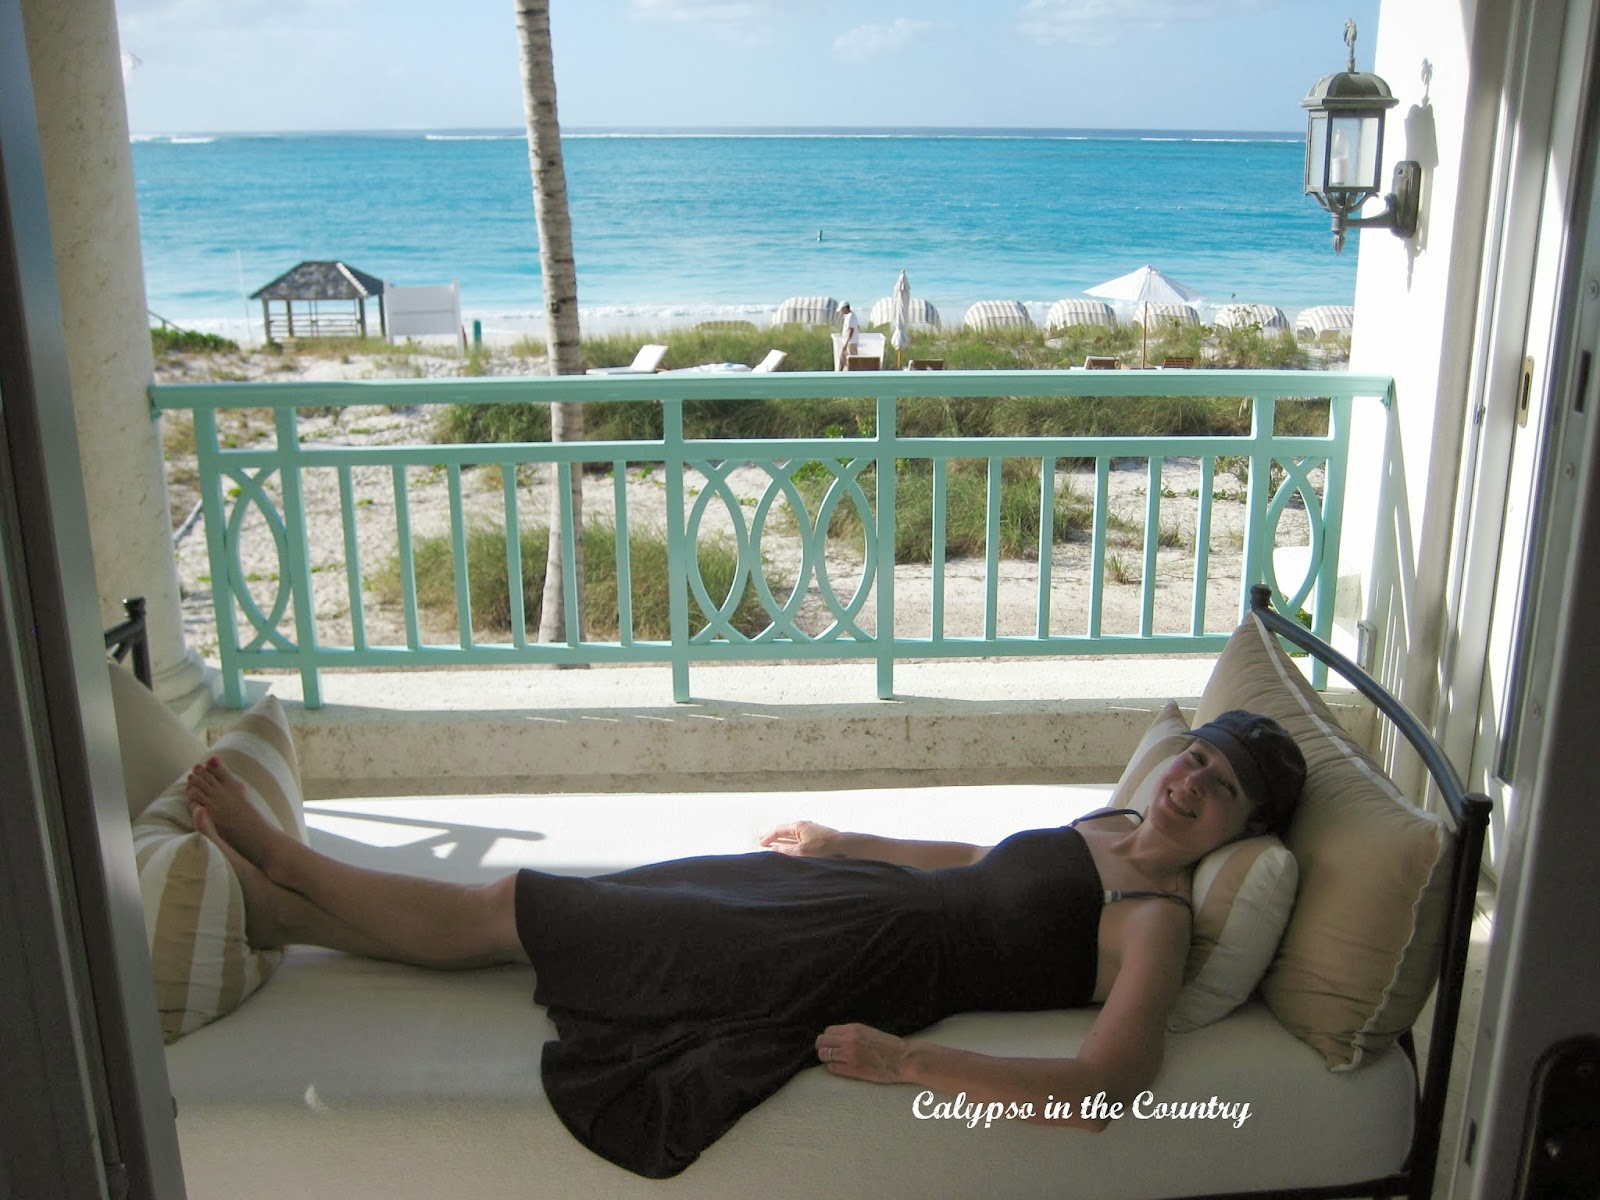 Lounging at the Palms Turks and Caicos